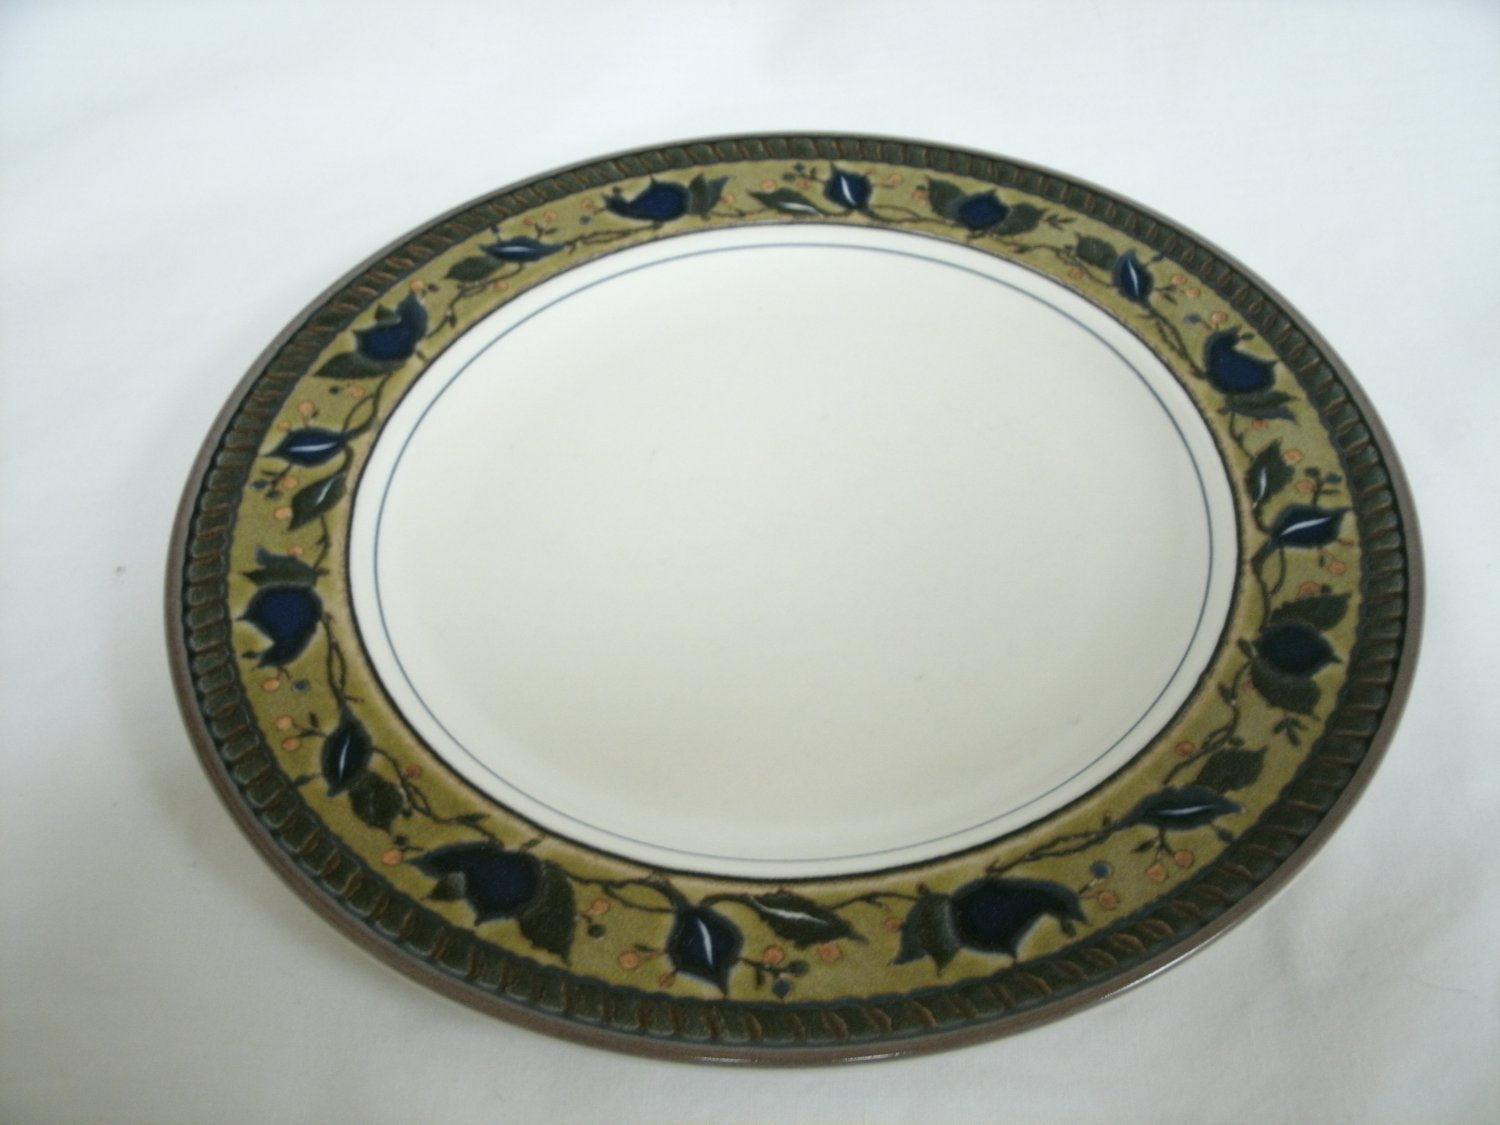 Mikasa Intaglio Arabella Salad Plate Beige and Blue Colors Stoneware With Leaf Design 8 1/4 Inches